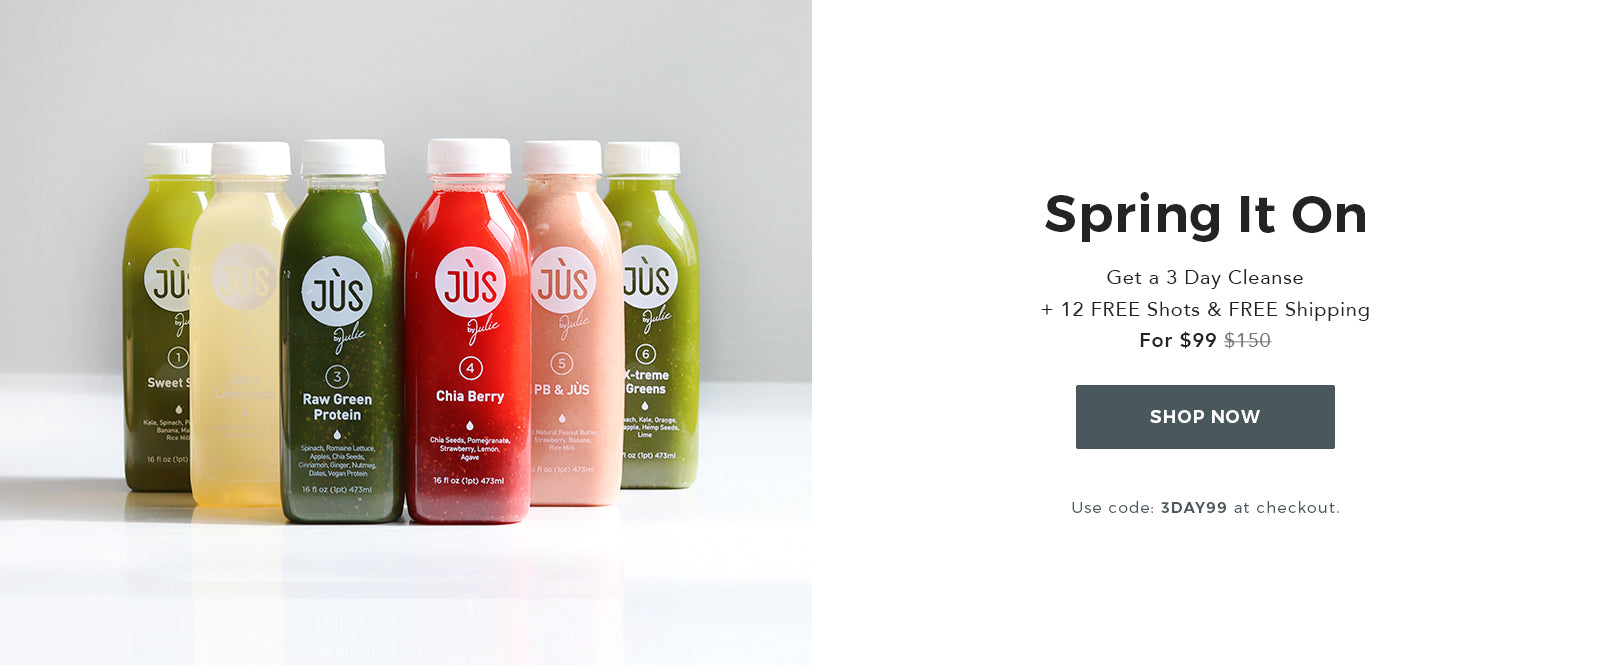 3 Day Cleanse for $99